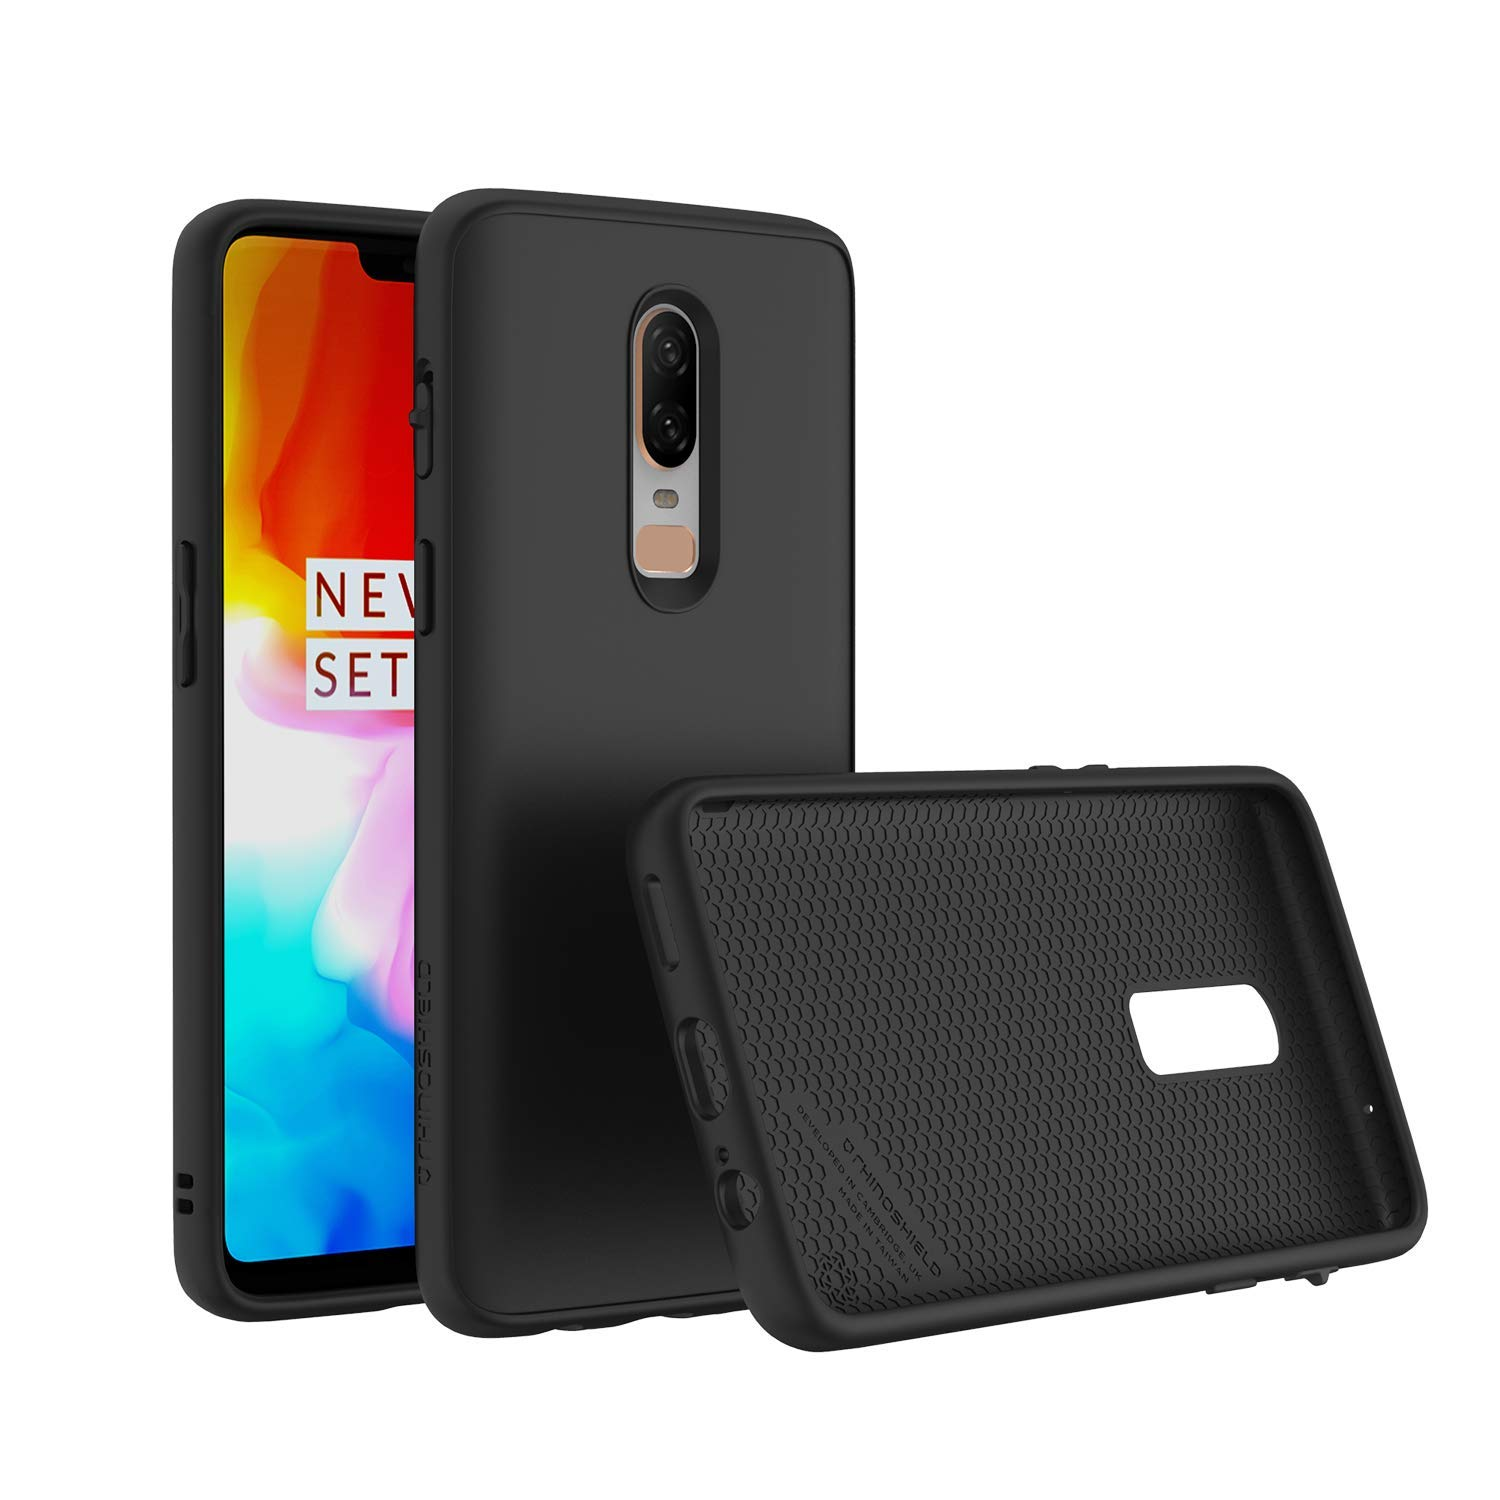 RhinoShield Case for OnePlus 6 [SolidSuit] | Shock Absorbent Slim Design  Protective Cover [3 5M/11ft Drop Protection] - Classic Black